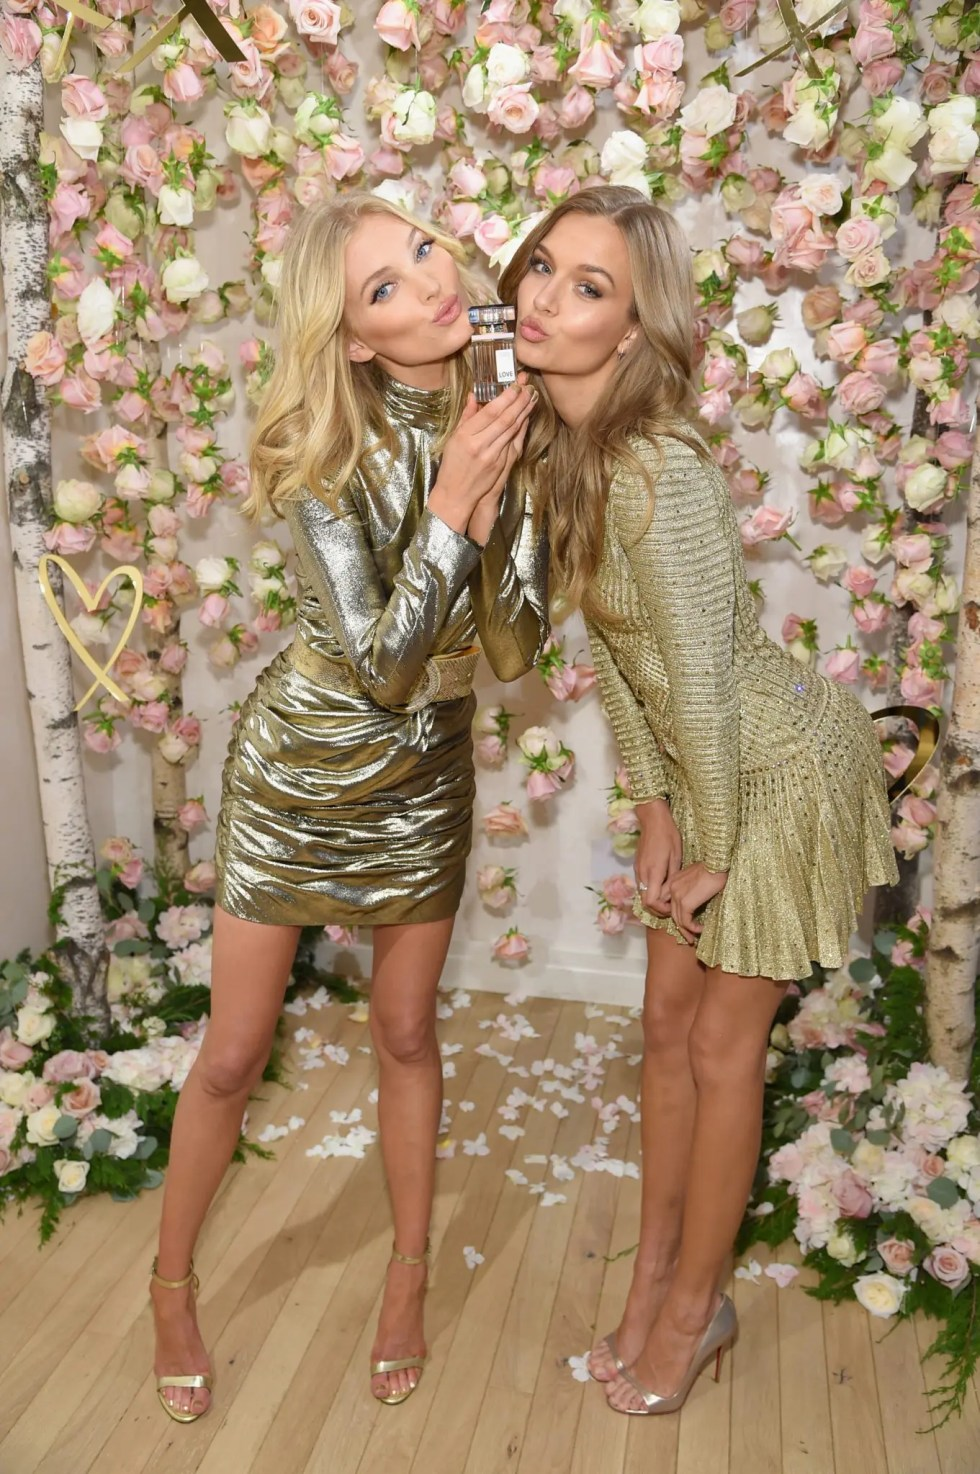 Victoria's Secret Angels Josephine Skriver And Elsa Hosk Celebrate The All-New LOVE Fragrance